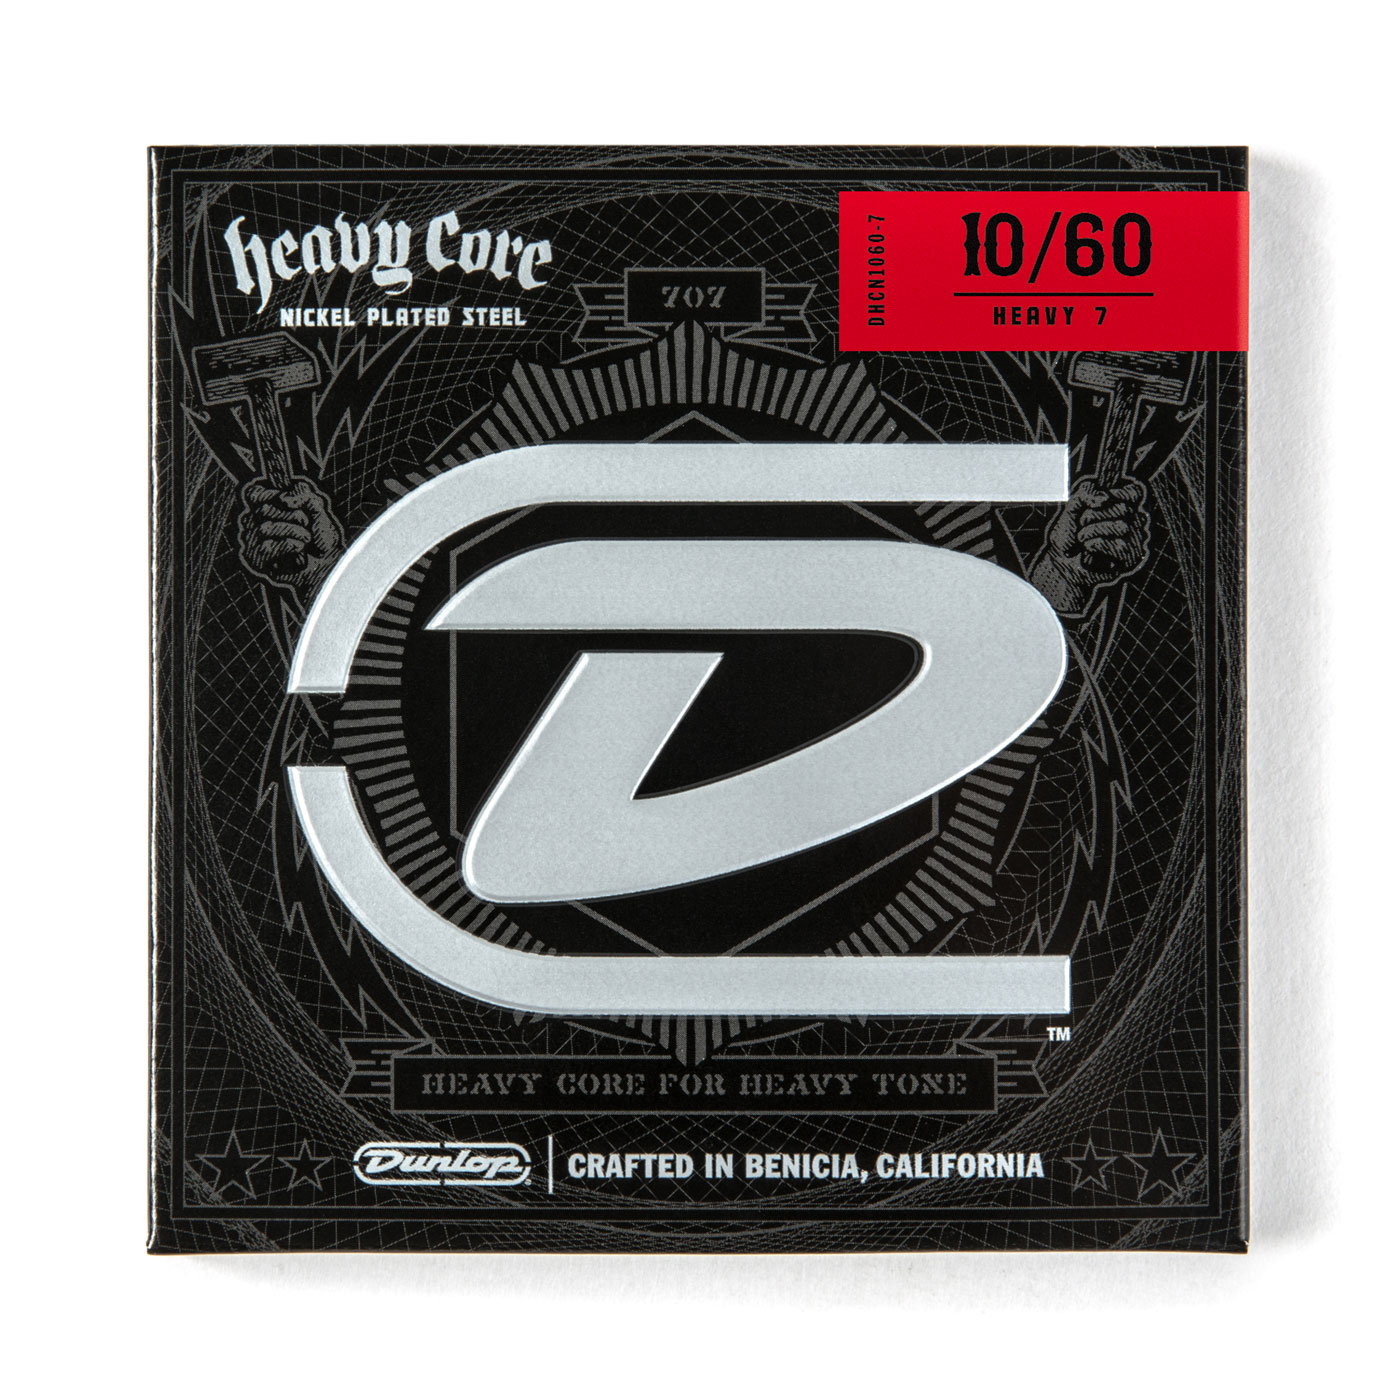 DUNLOP HEAVY CORE NEW ZEALAND